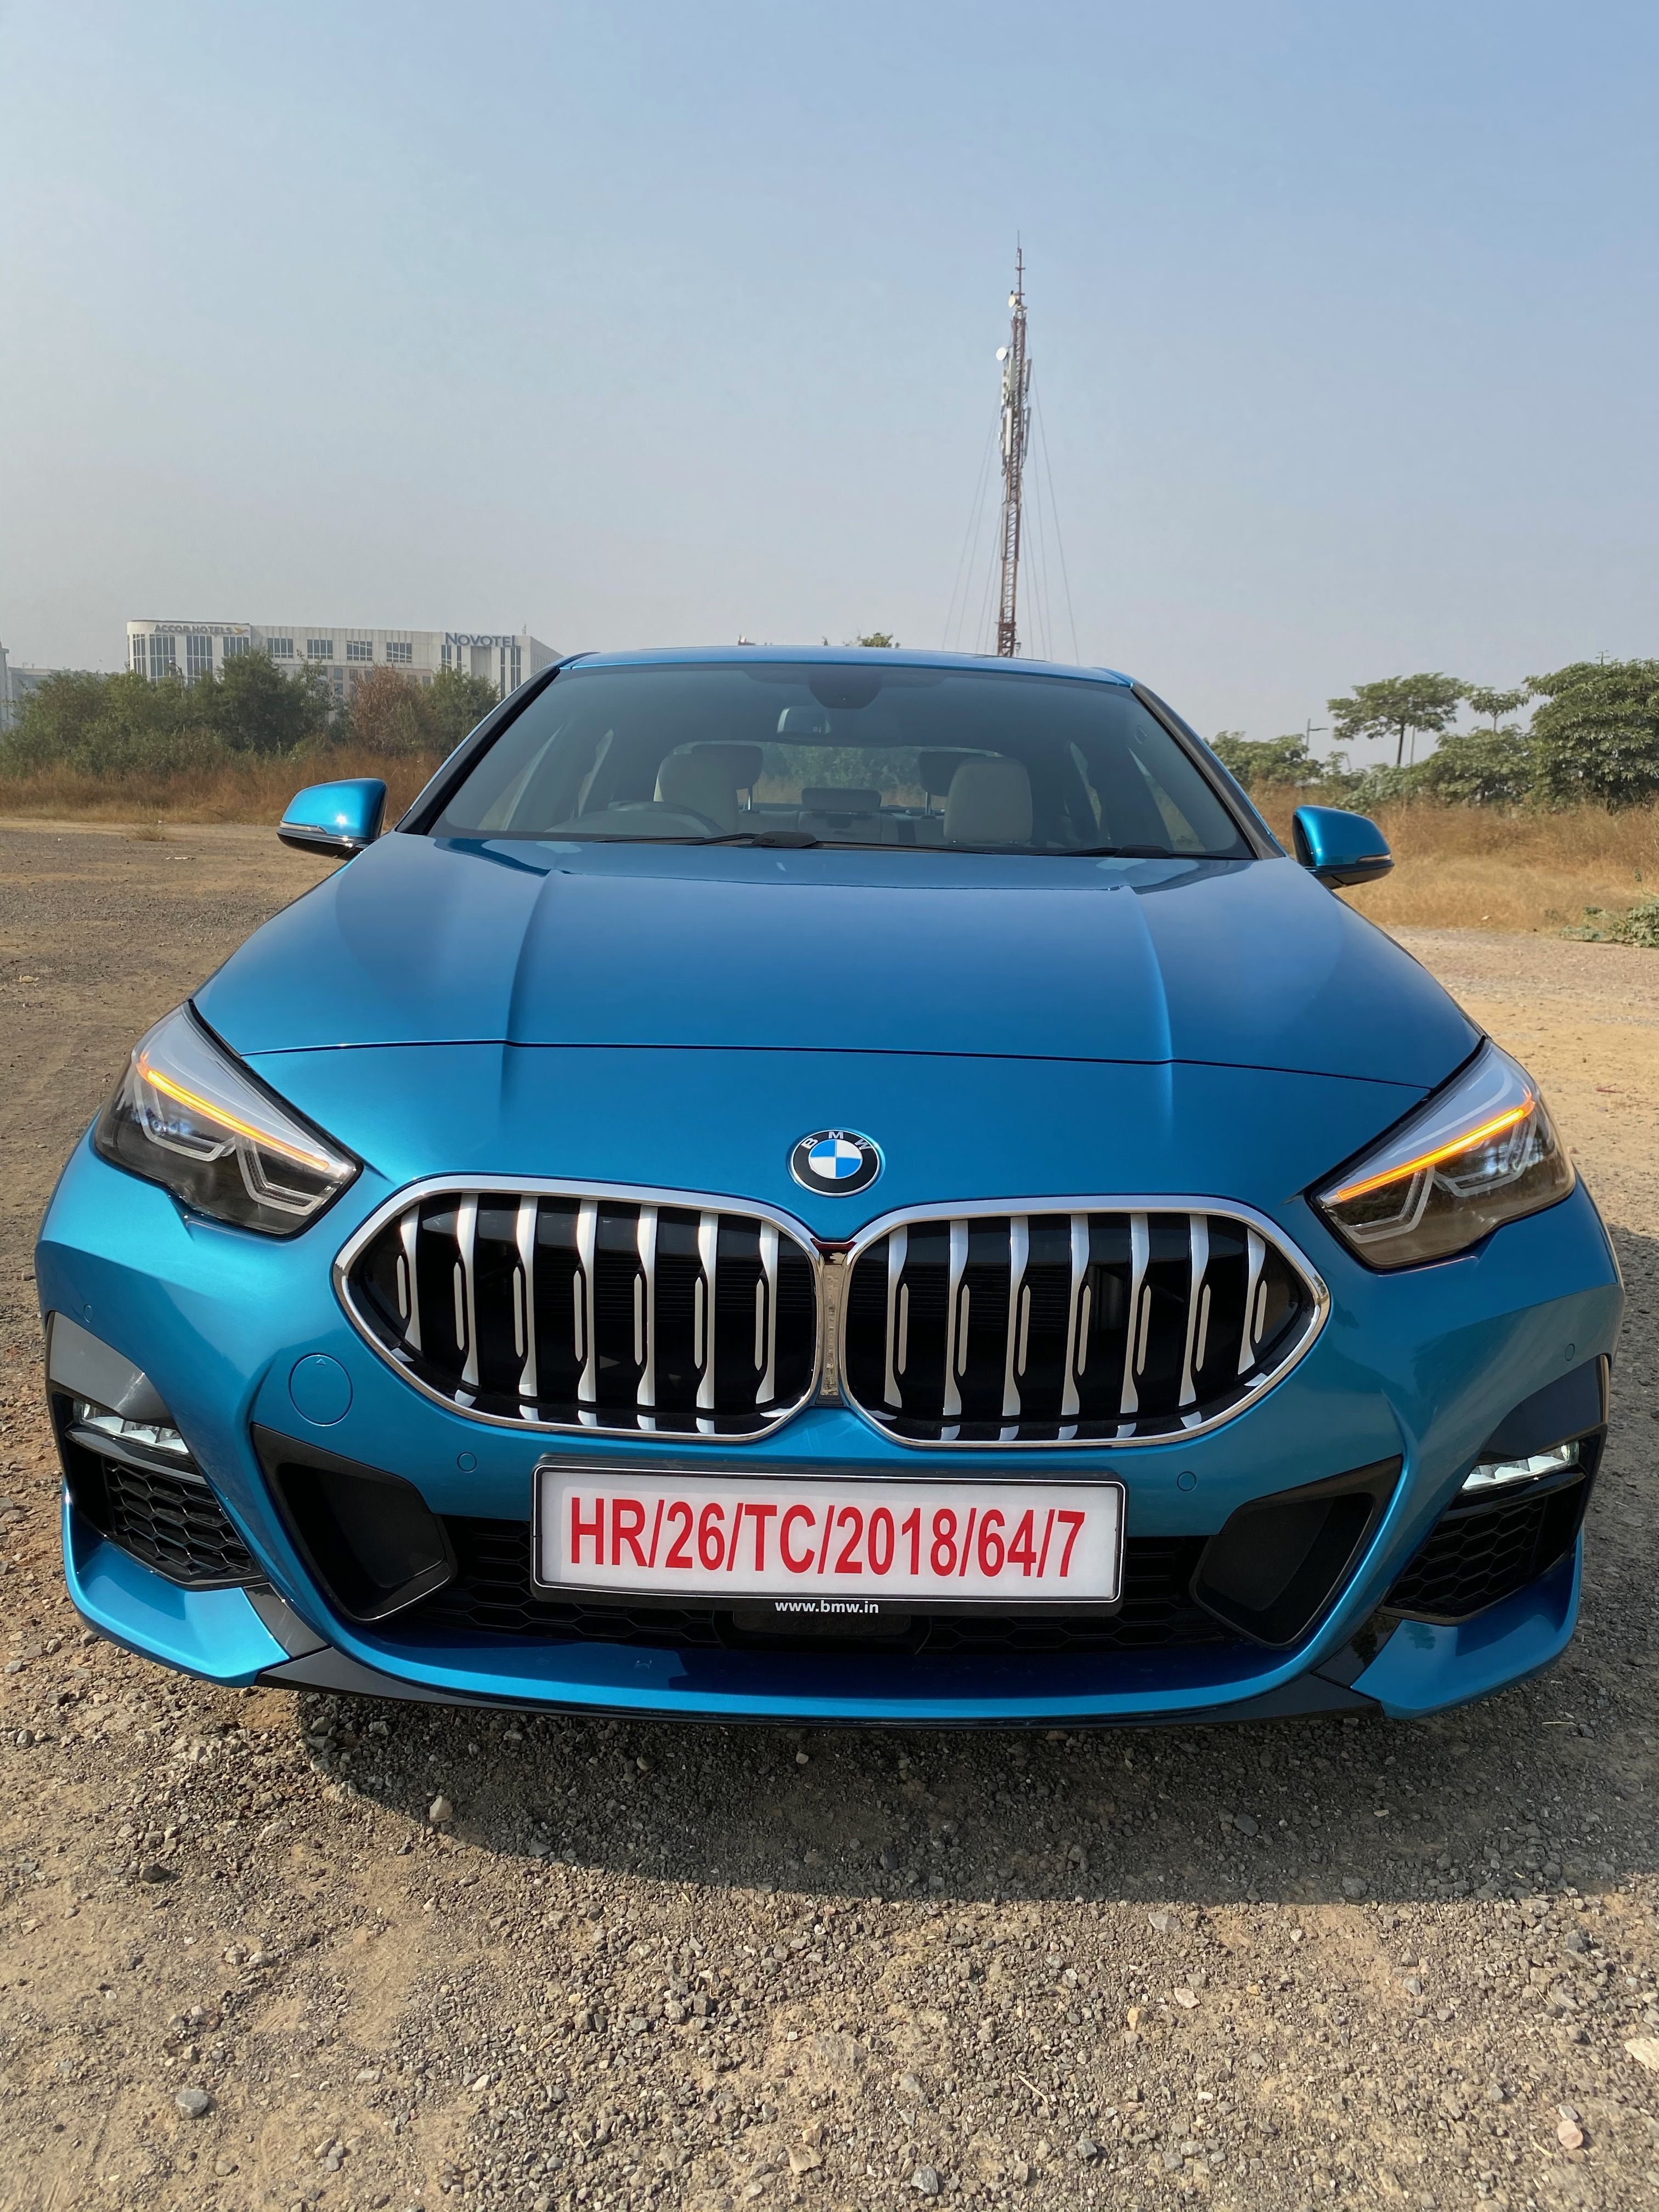 Bmw 2 Series Gran Coupé 220d M Sport 41 Lakh Real Life Review In 2021 Bmw Bmw 2 Gran Coupe